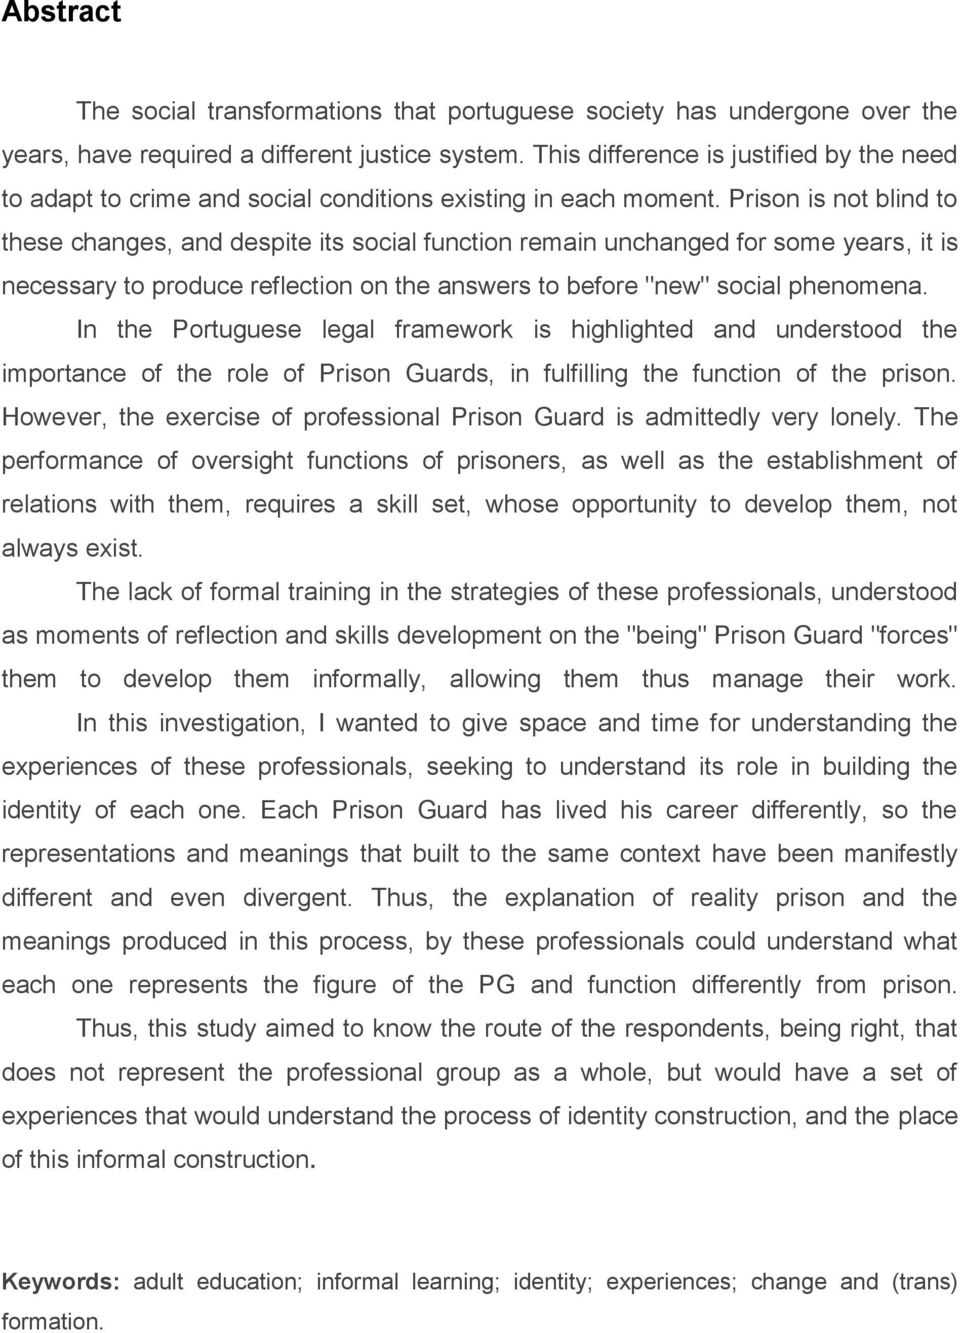 "Prison is not blind to these changes, and despite its social function remain unchanged for some years, it is necessary to produce reflection on the answers to before ""new"" social phenomena."